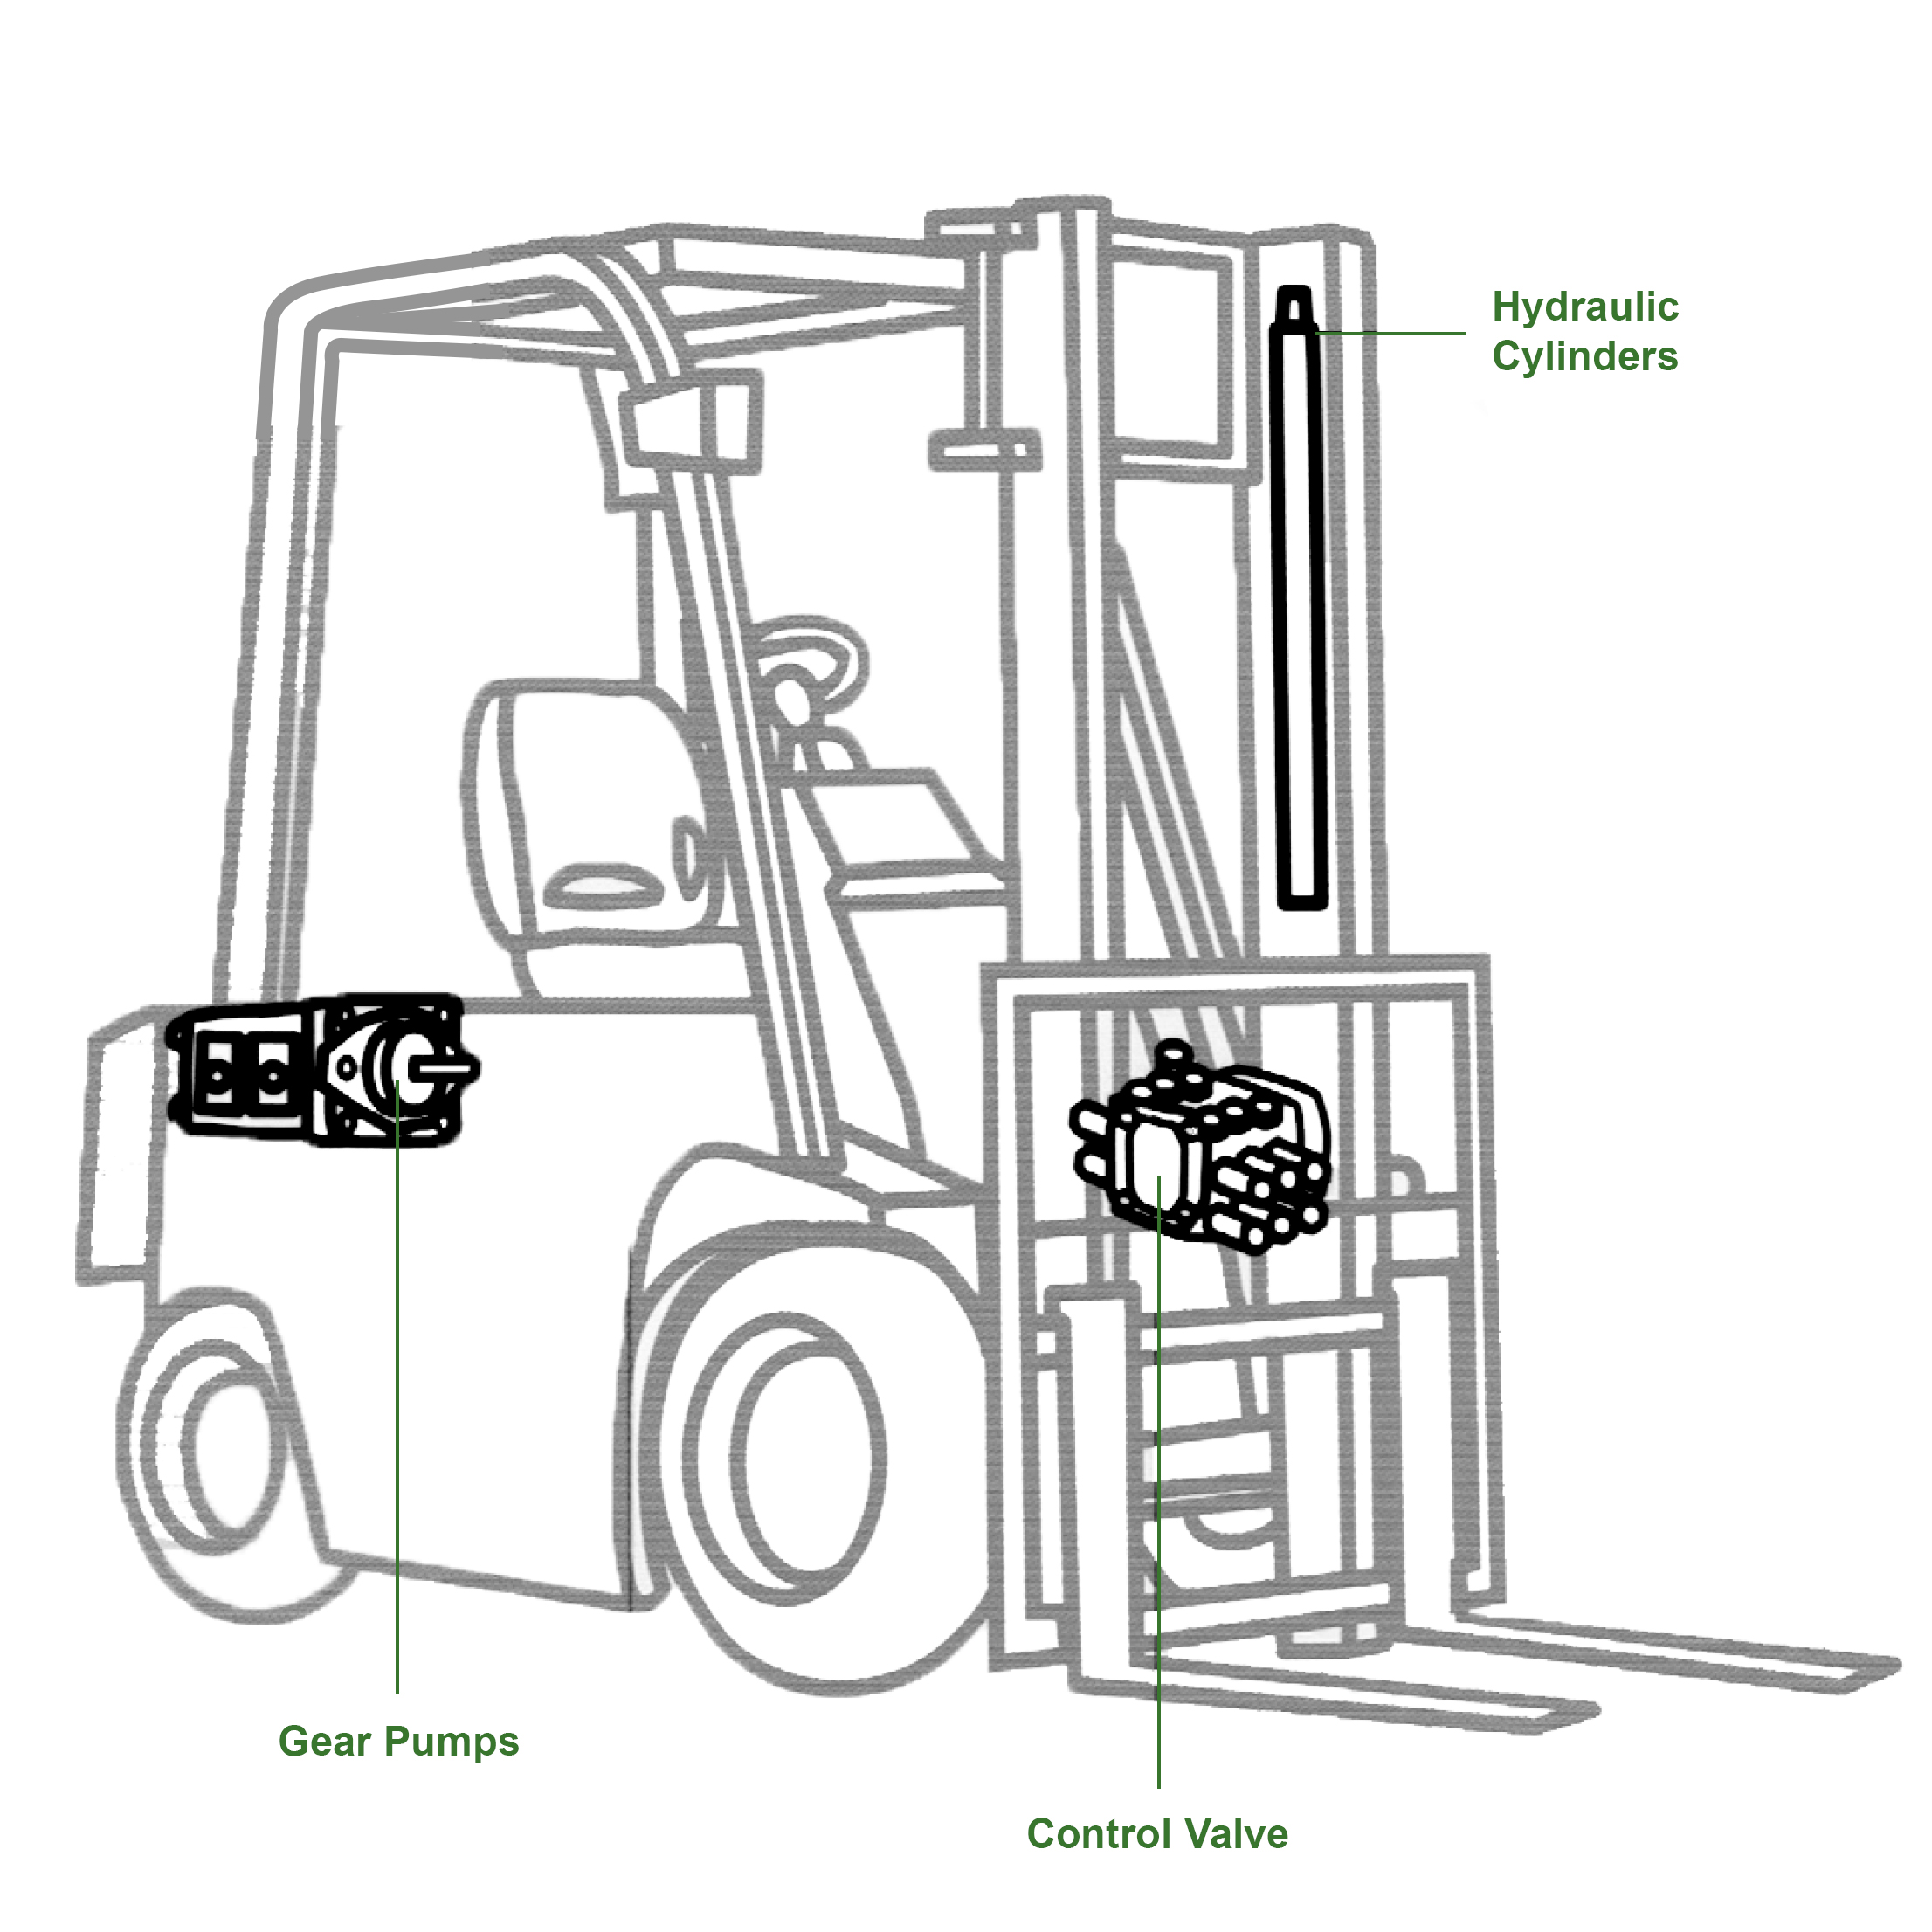 Forklift Drawing at GetDrawings com | Free for personal use